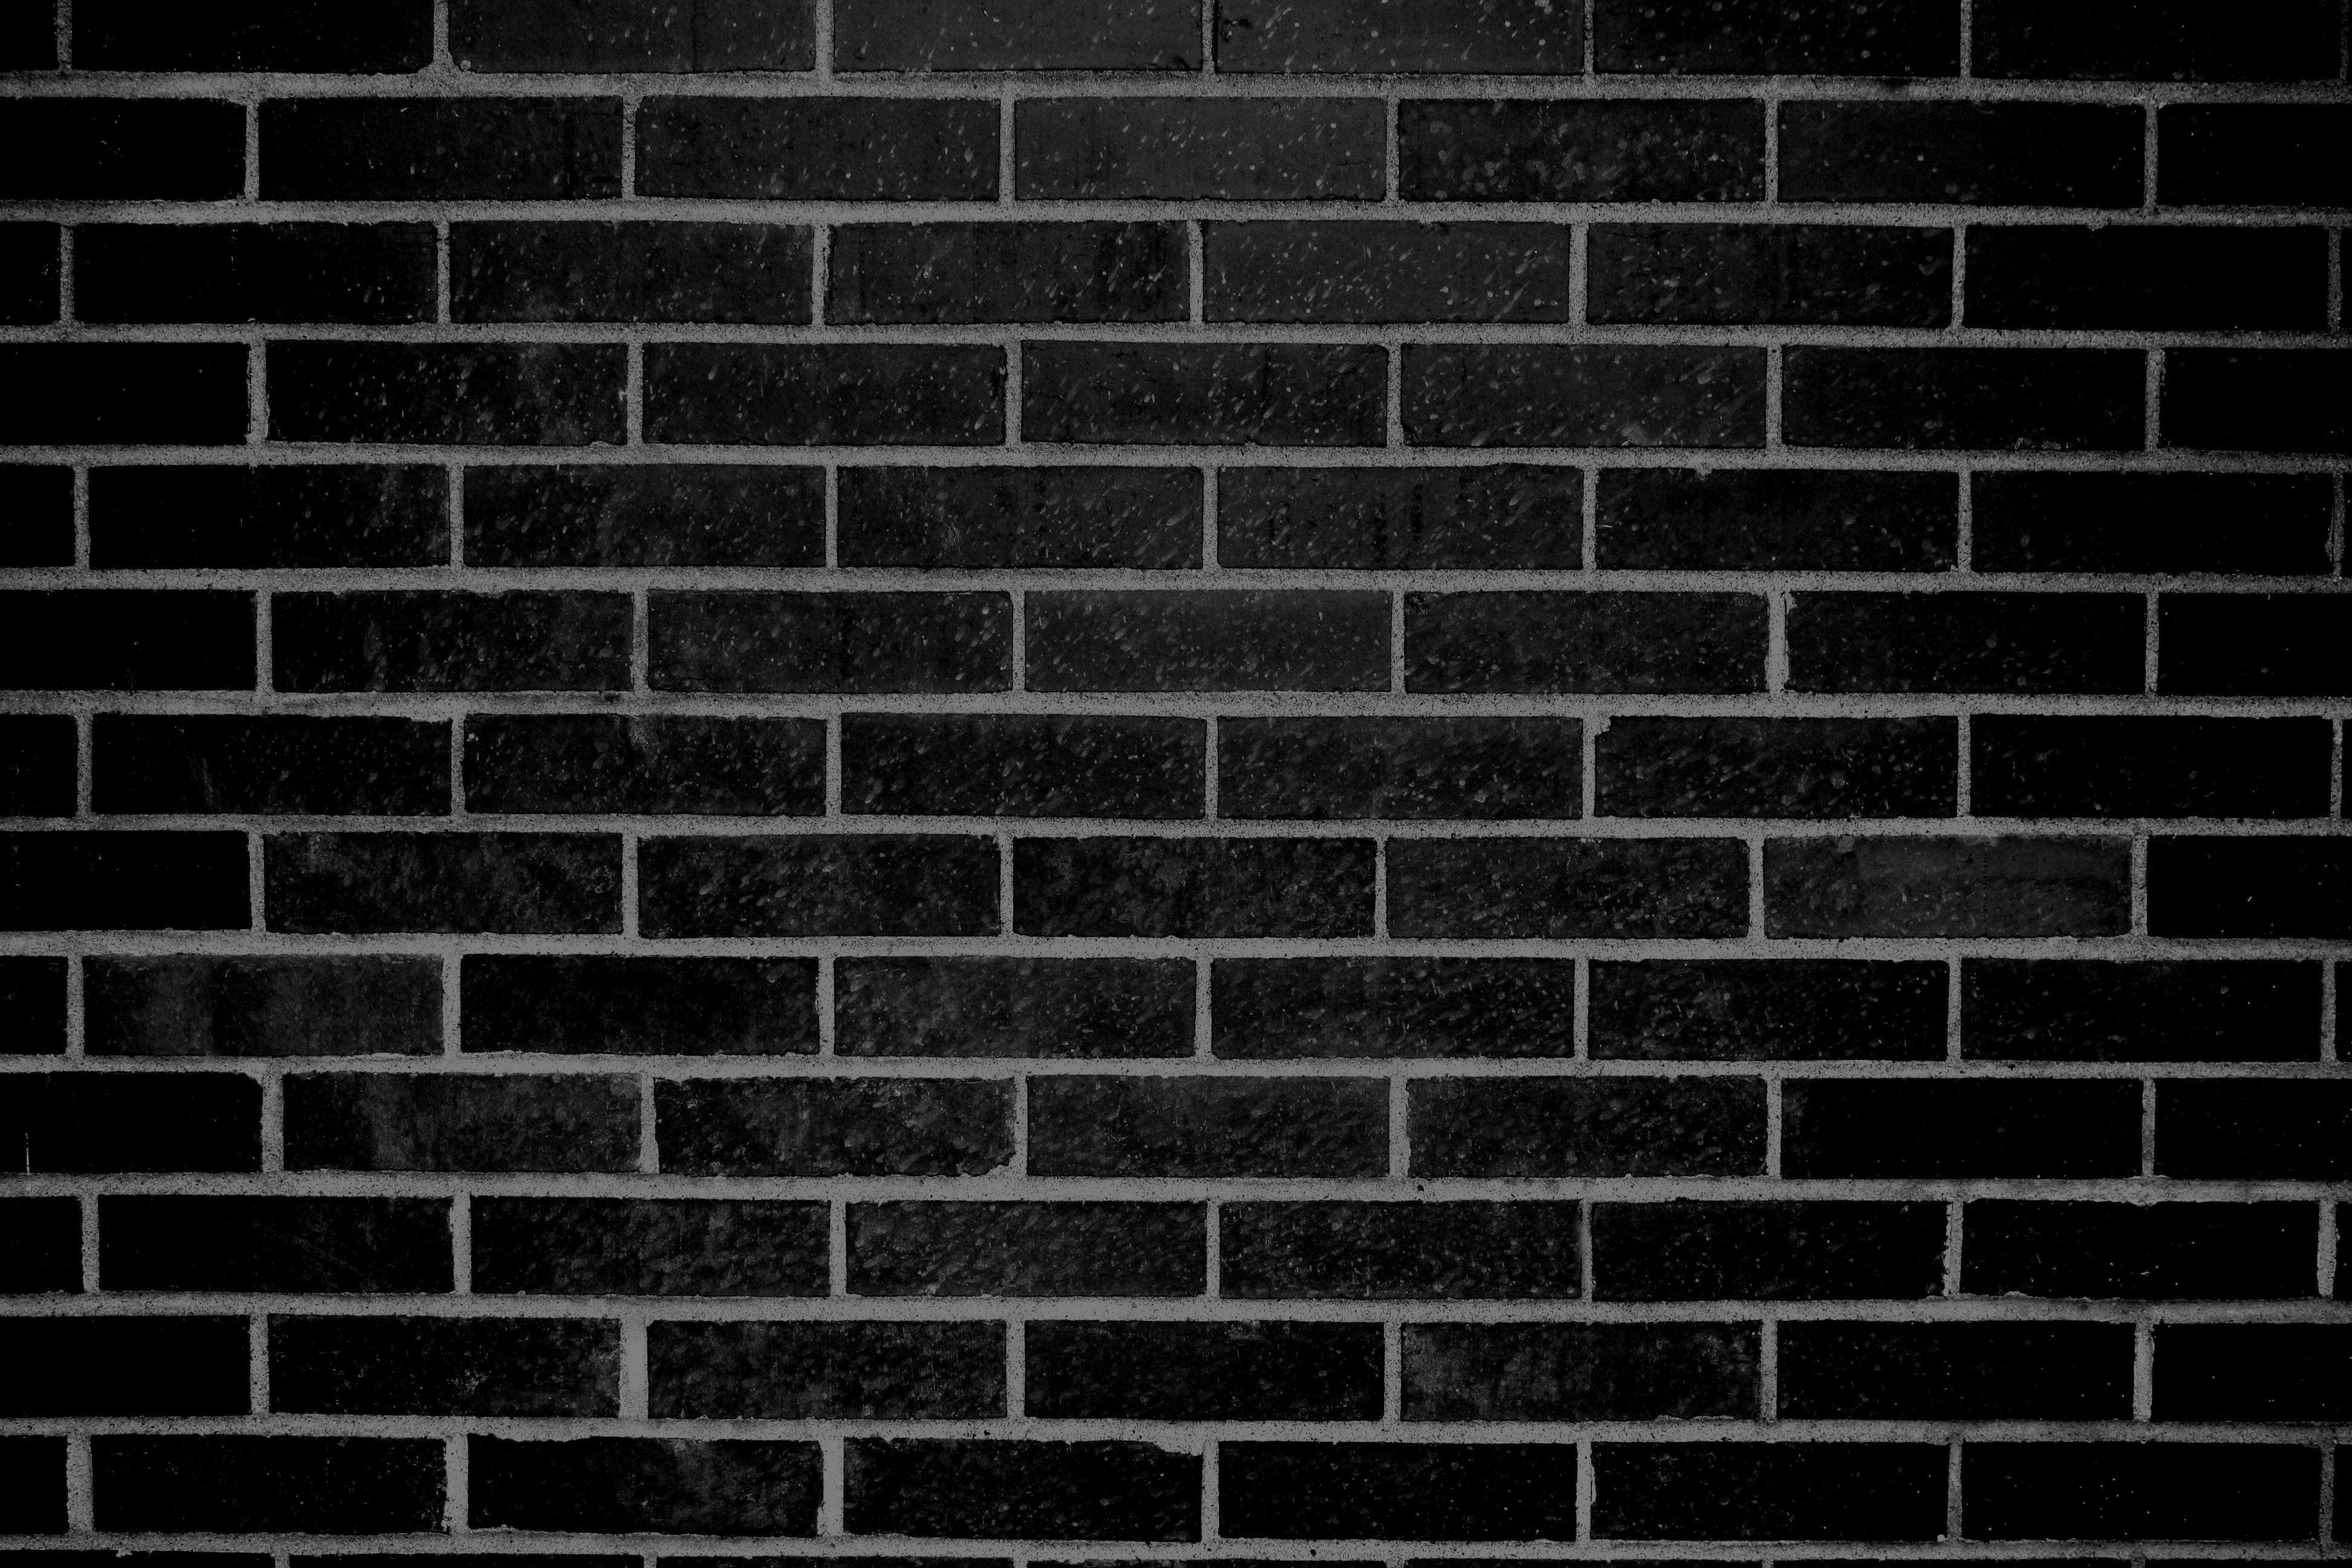 Black Brick Wall Texture Picture | Free Photograph ...